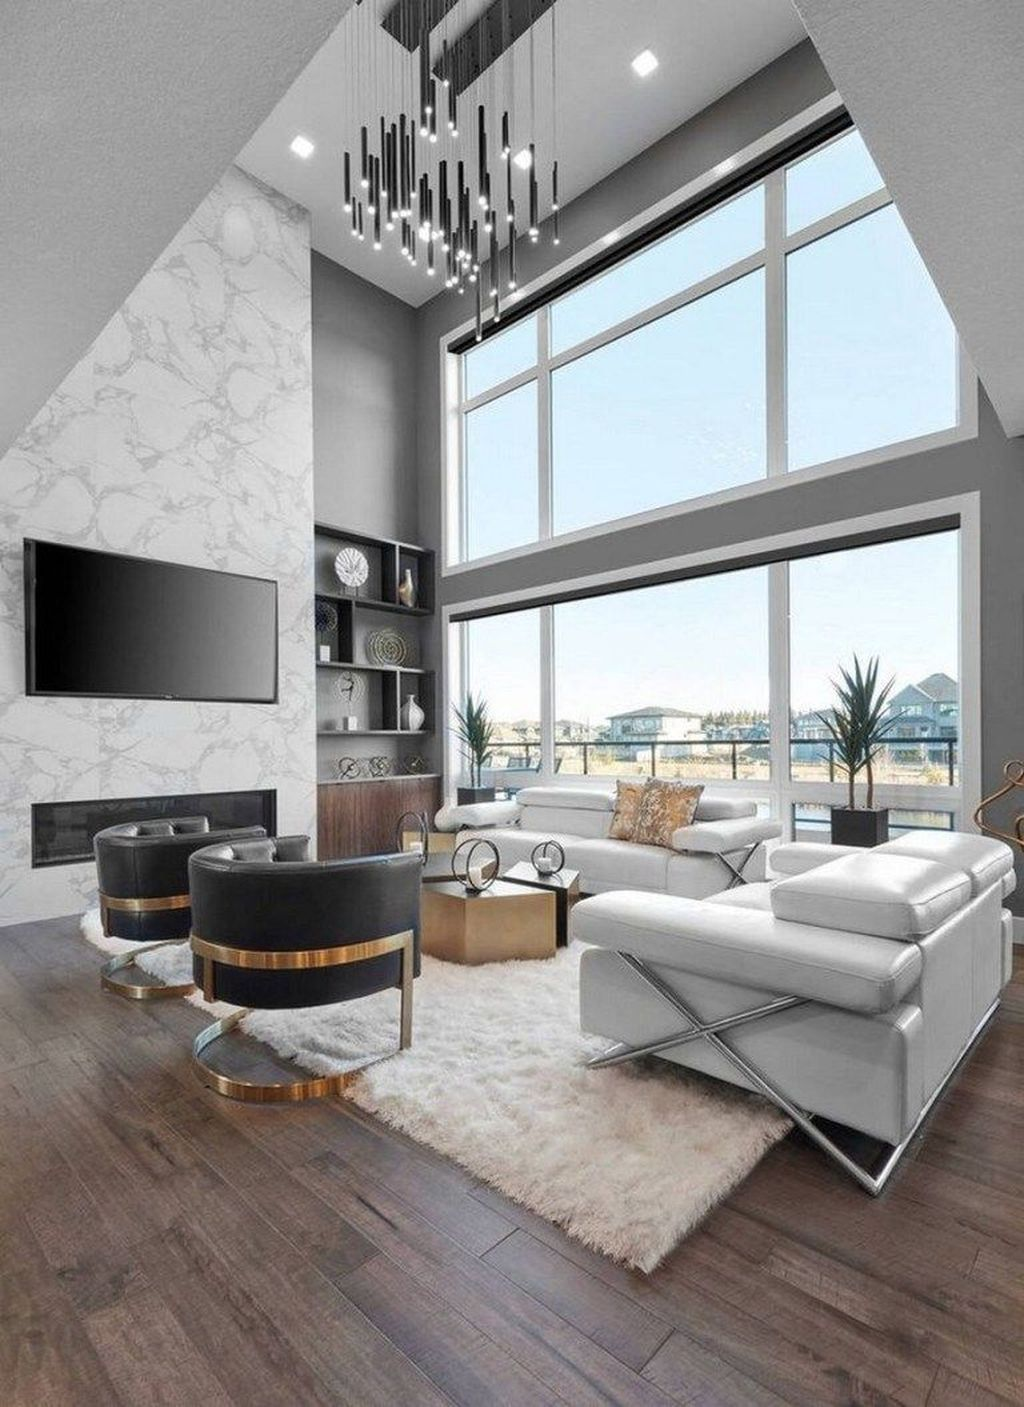 40 Adorable Home Interior Design Ideas To Try Are You Planning